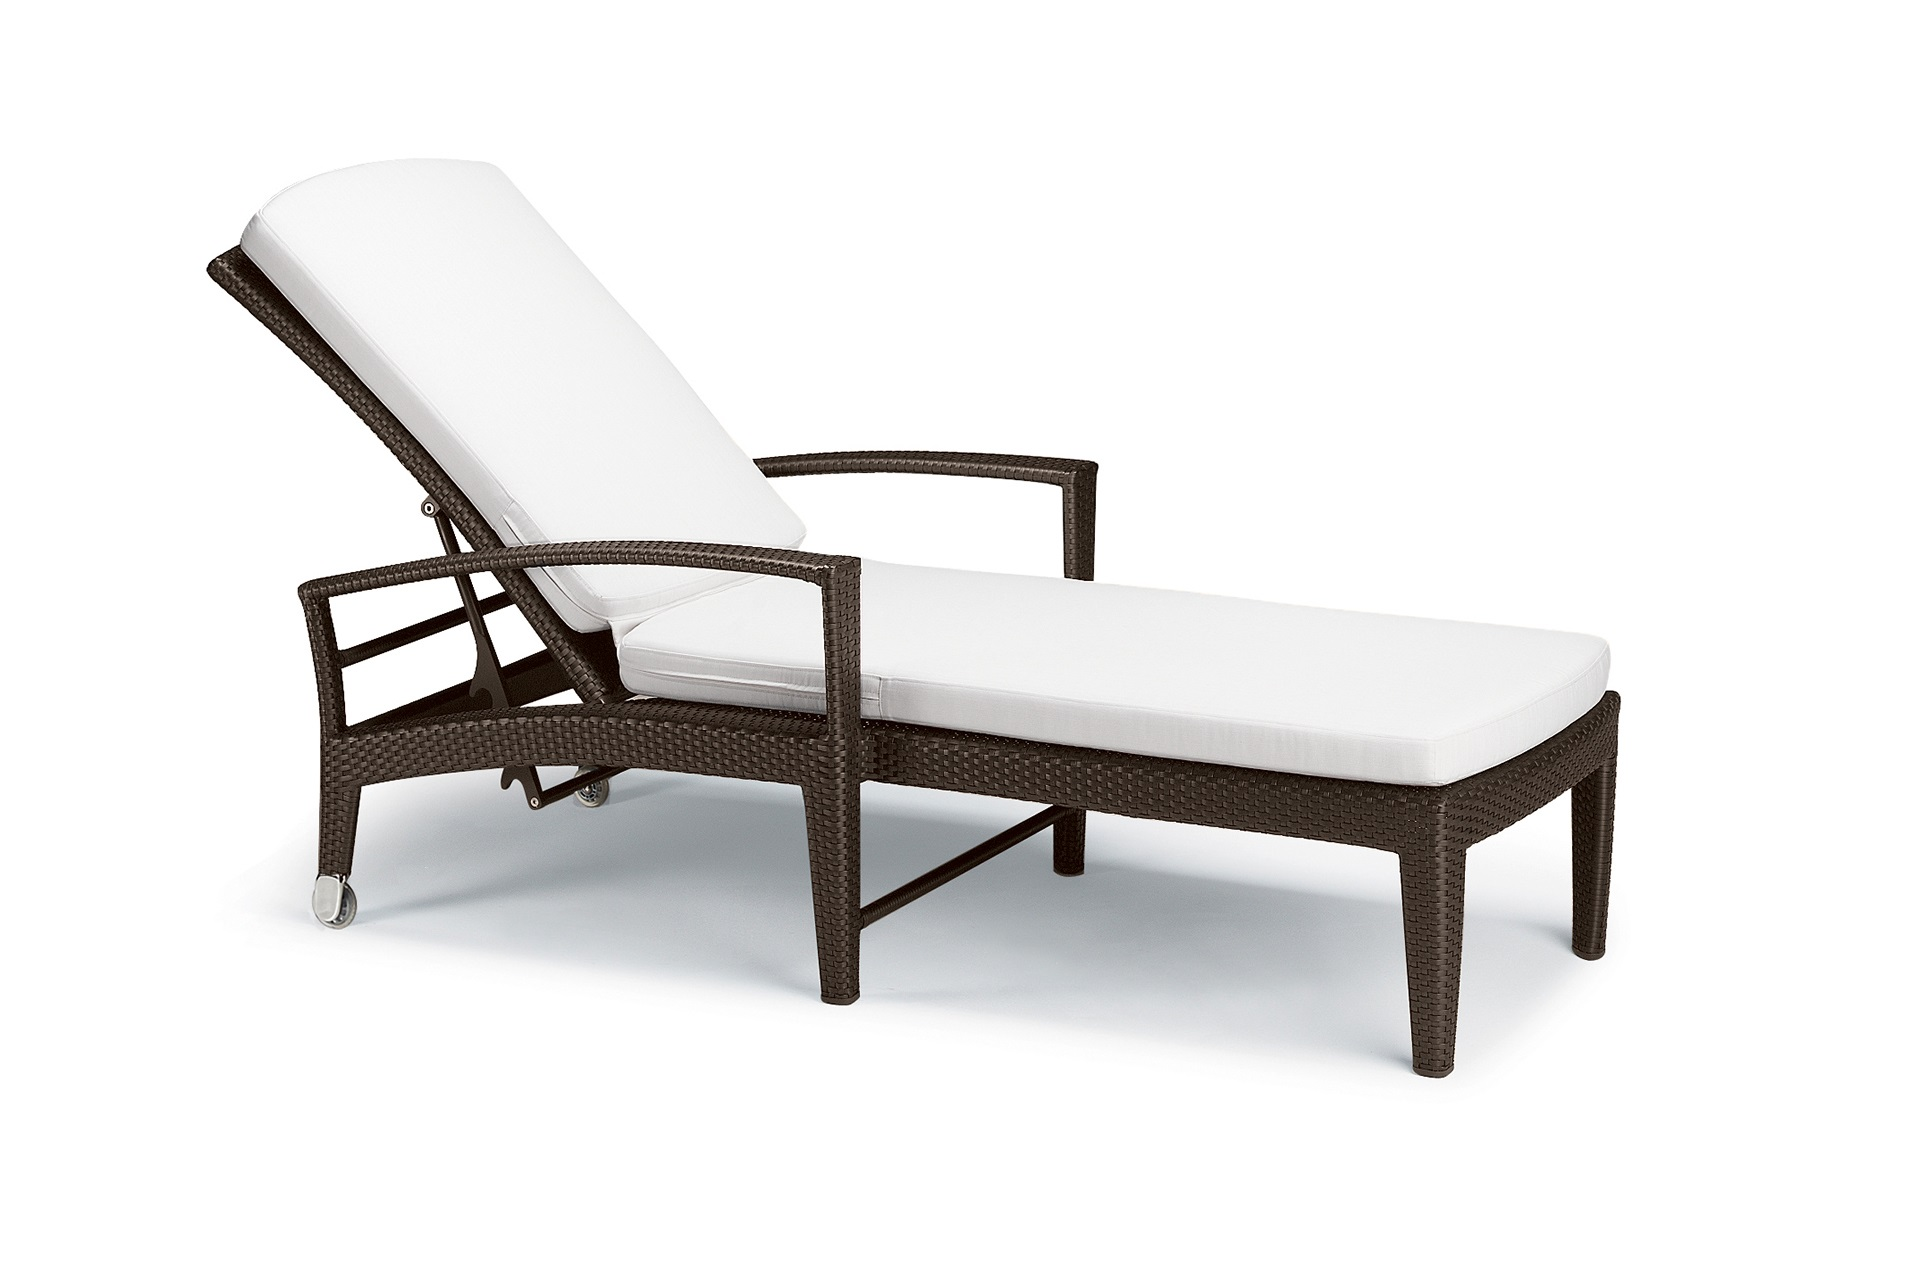 DEDON PANAMA Beach chair